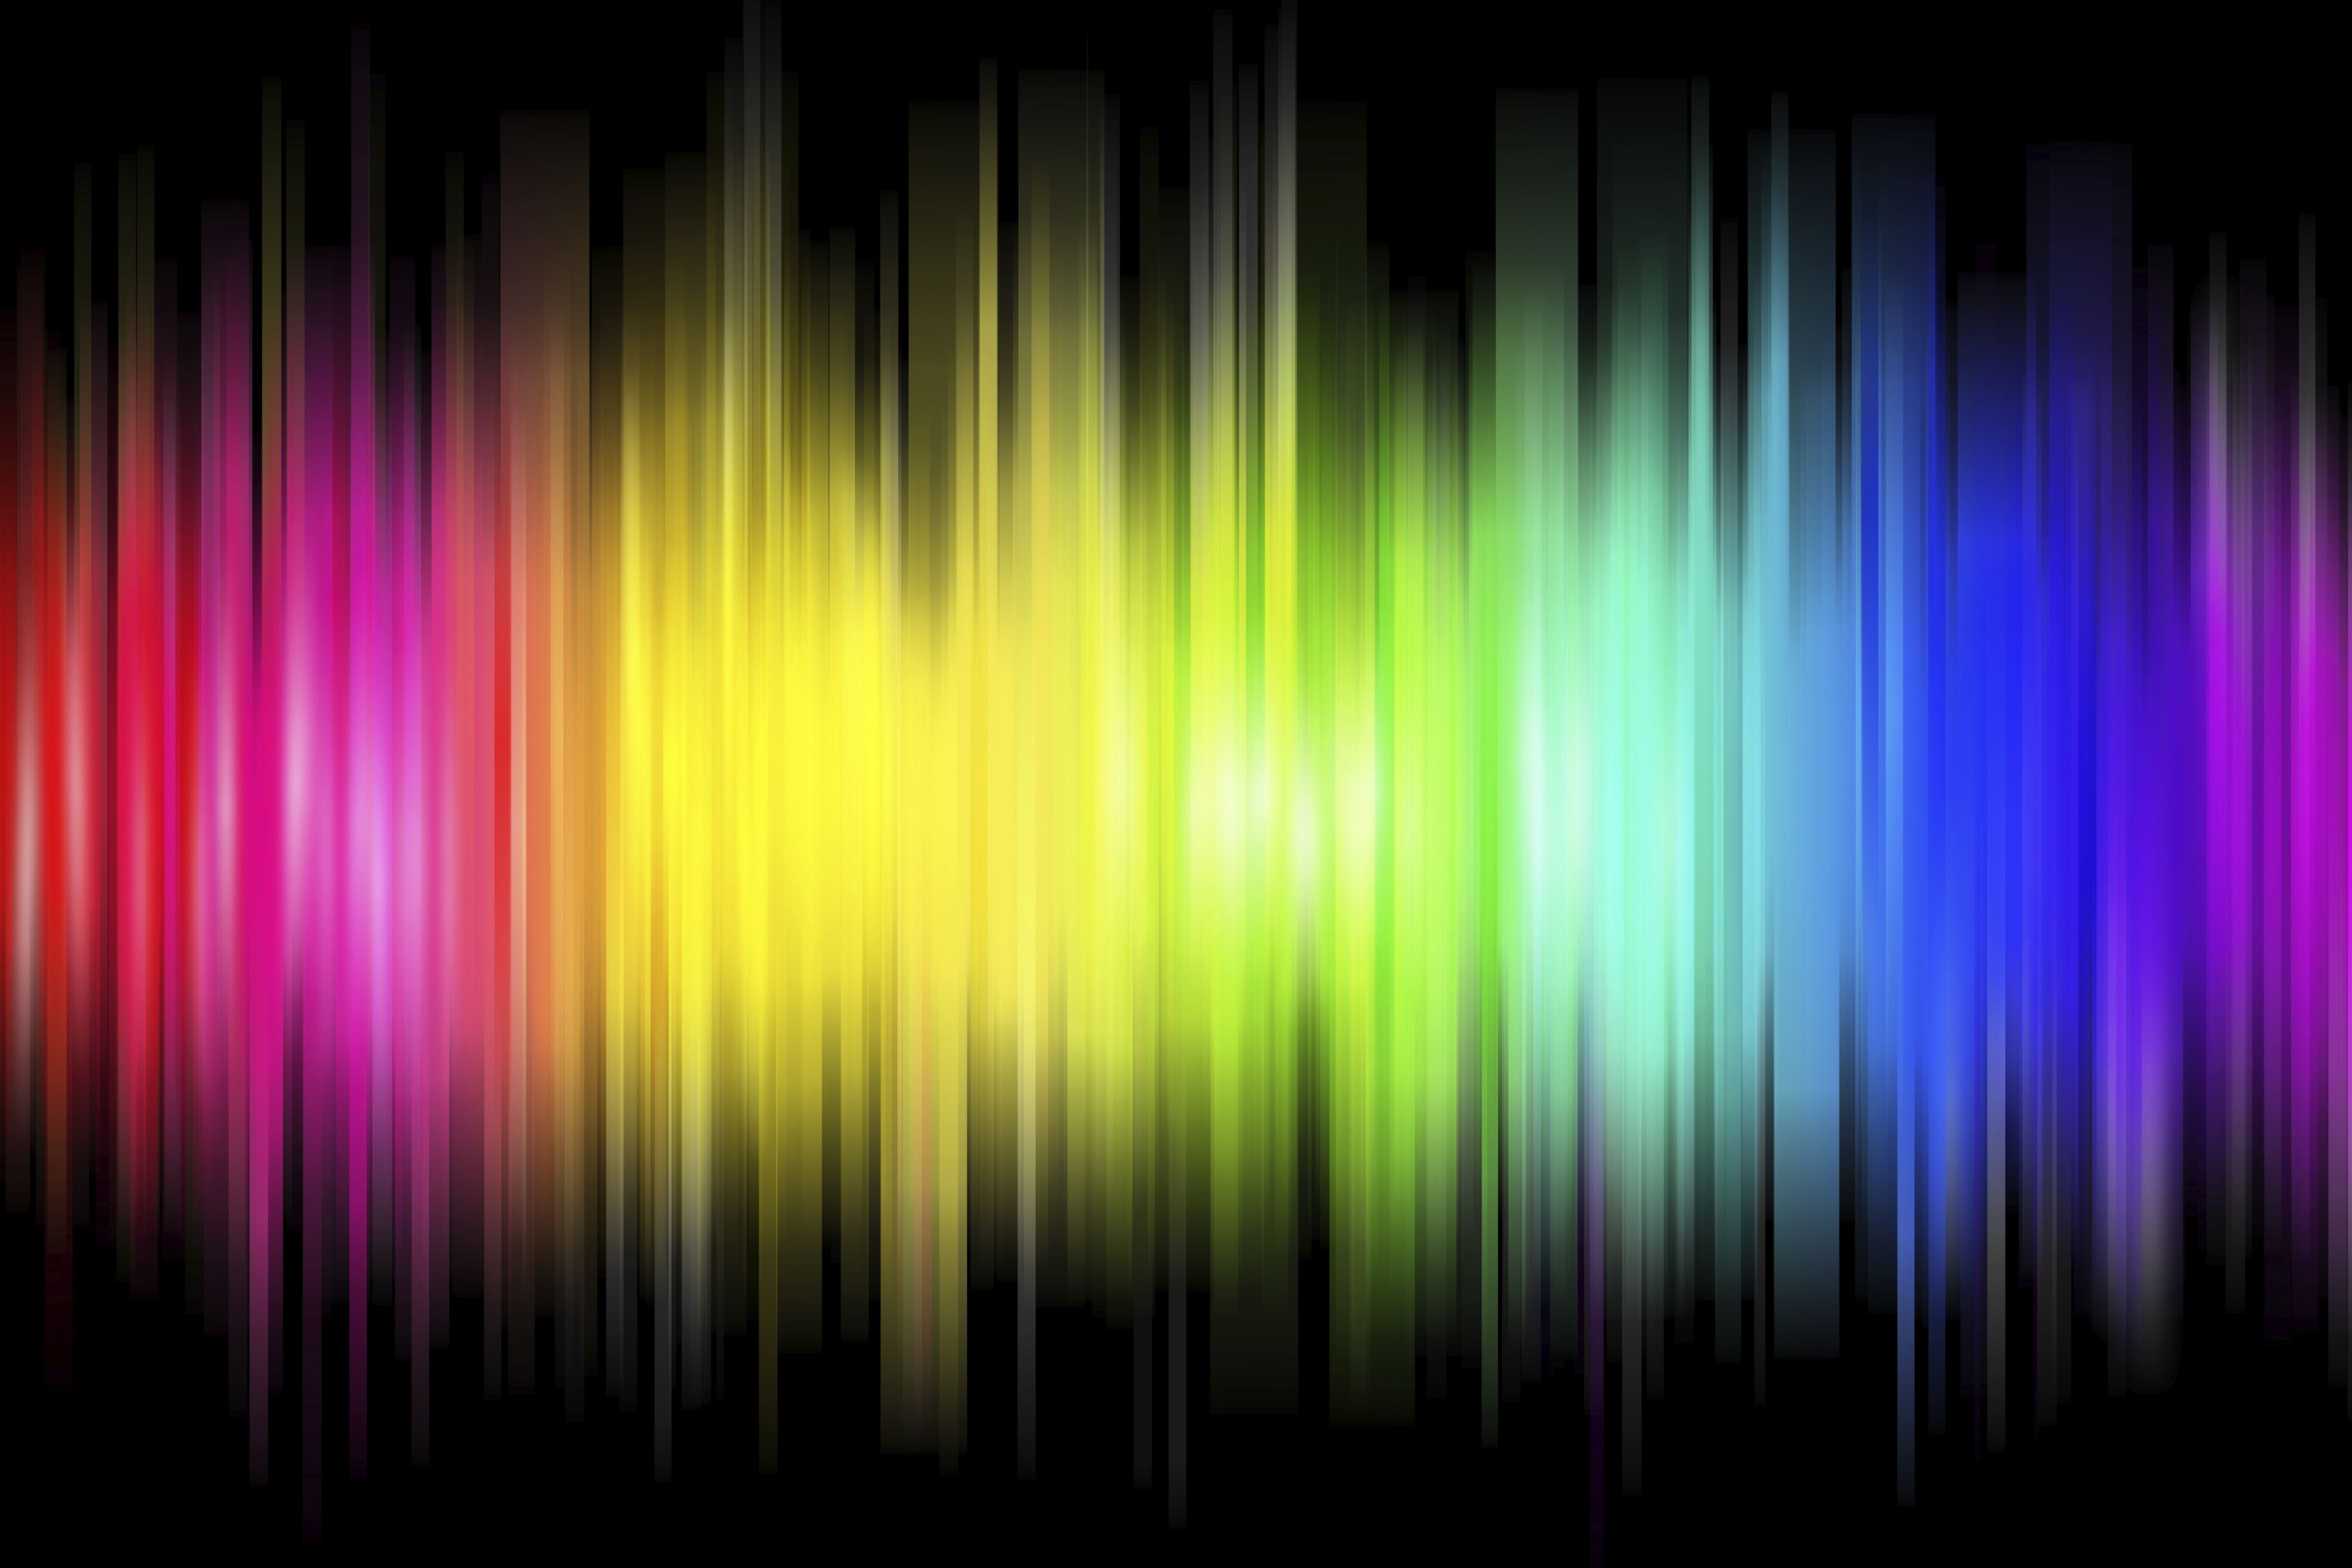 Understand The Visible Spectrum Wavelengths And Colors